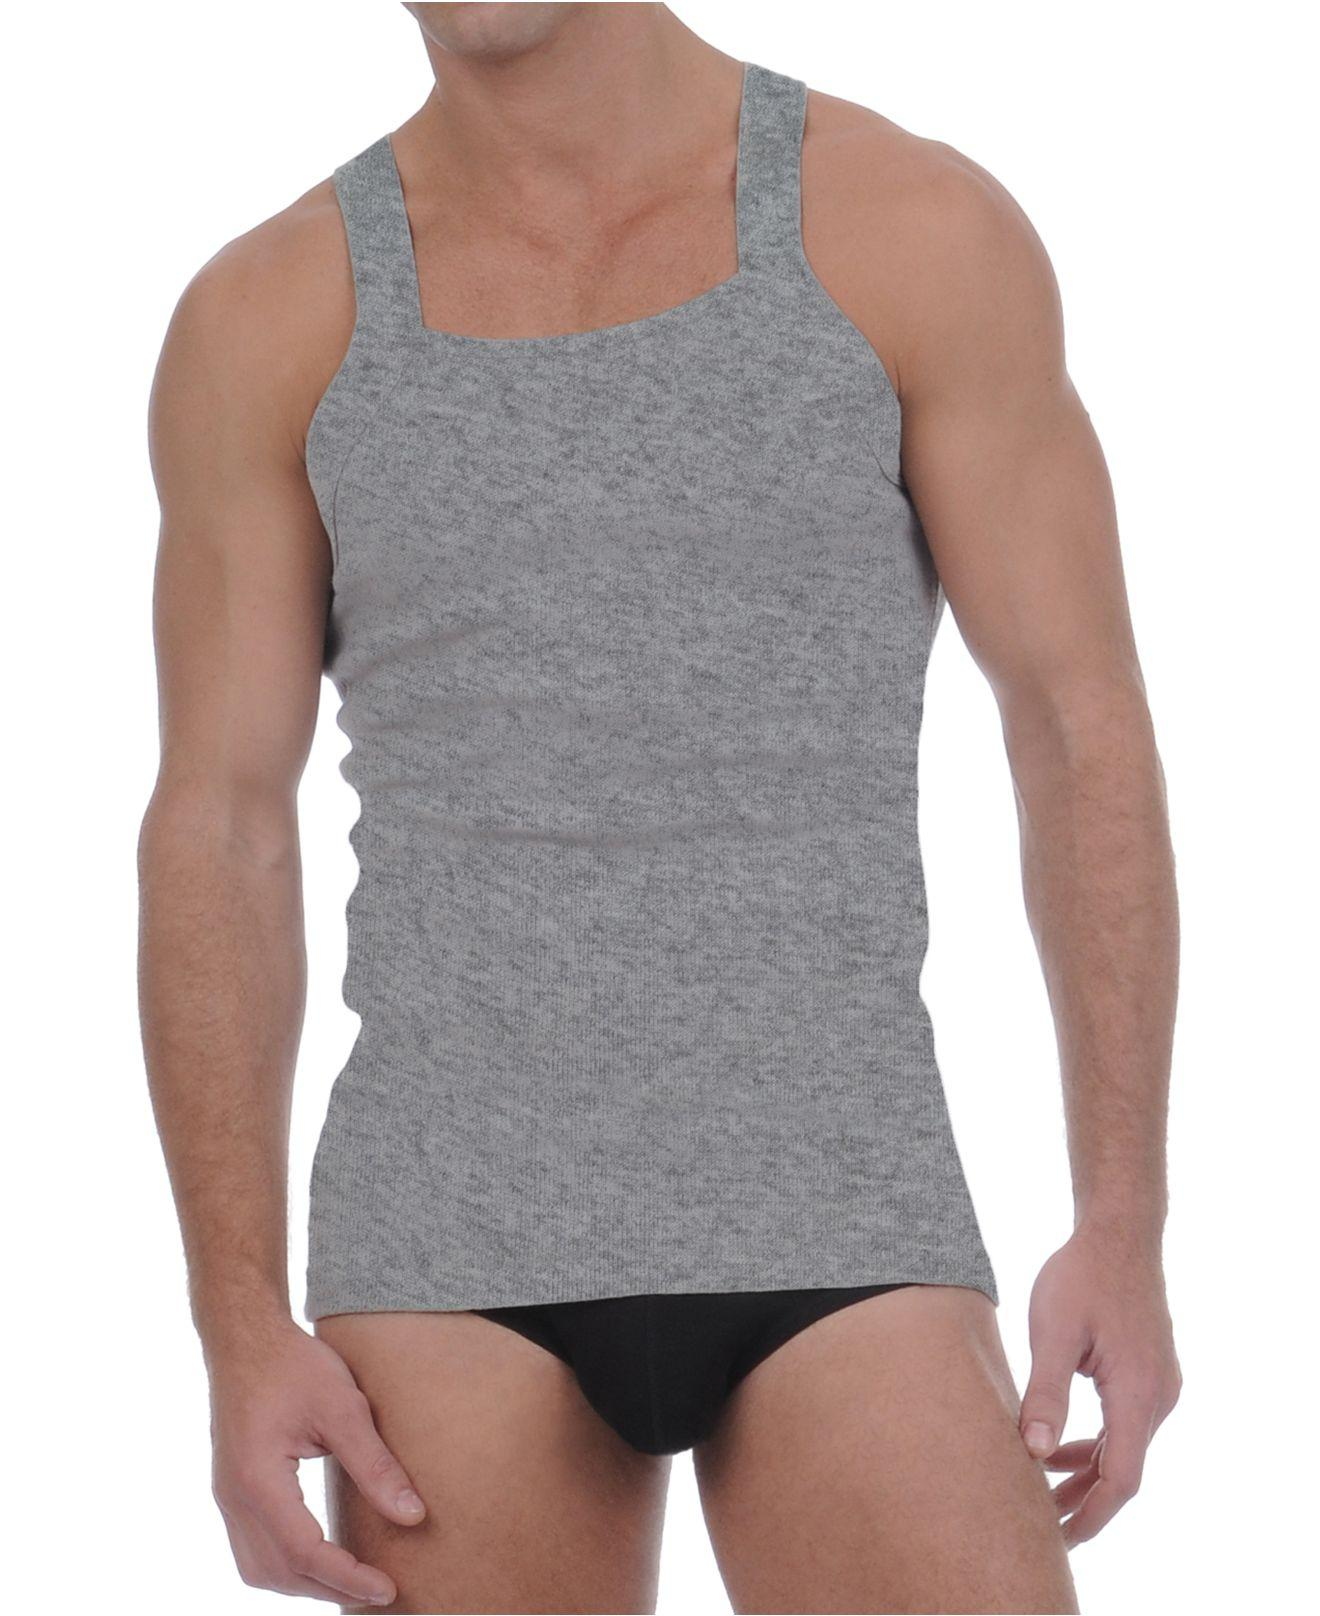 df9435e5abc08 Lyst - 2xist Essential 2 Pack Square-cut Tank in Gray for Men